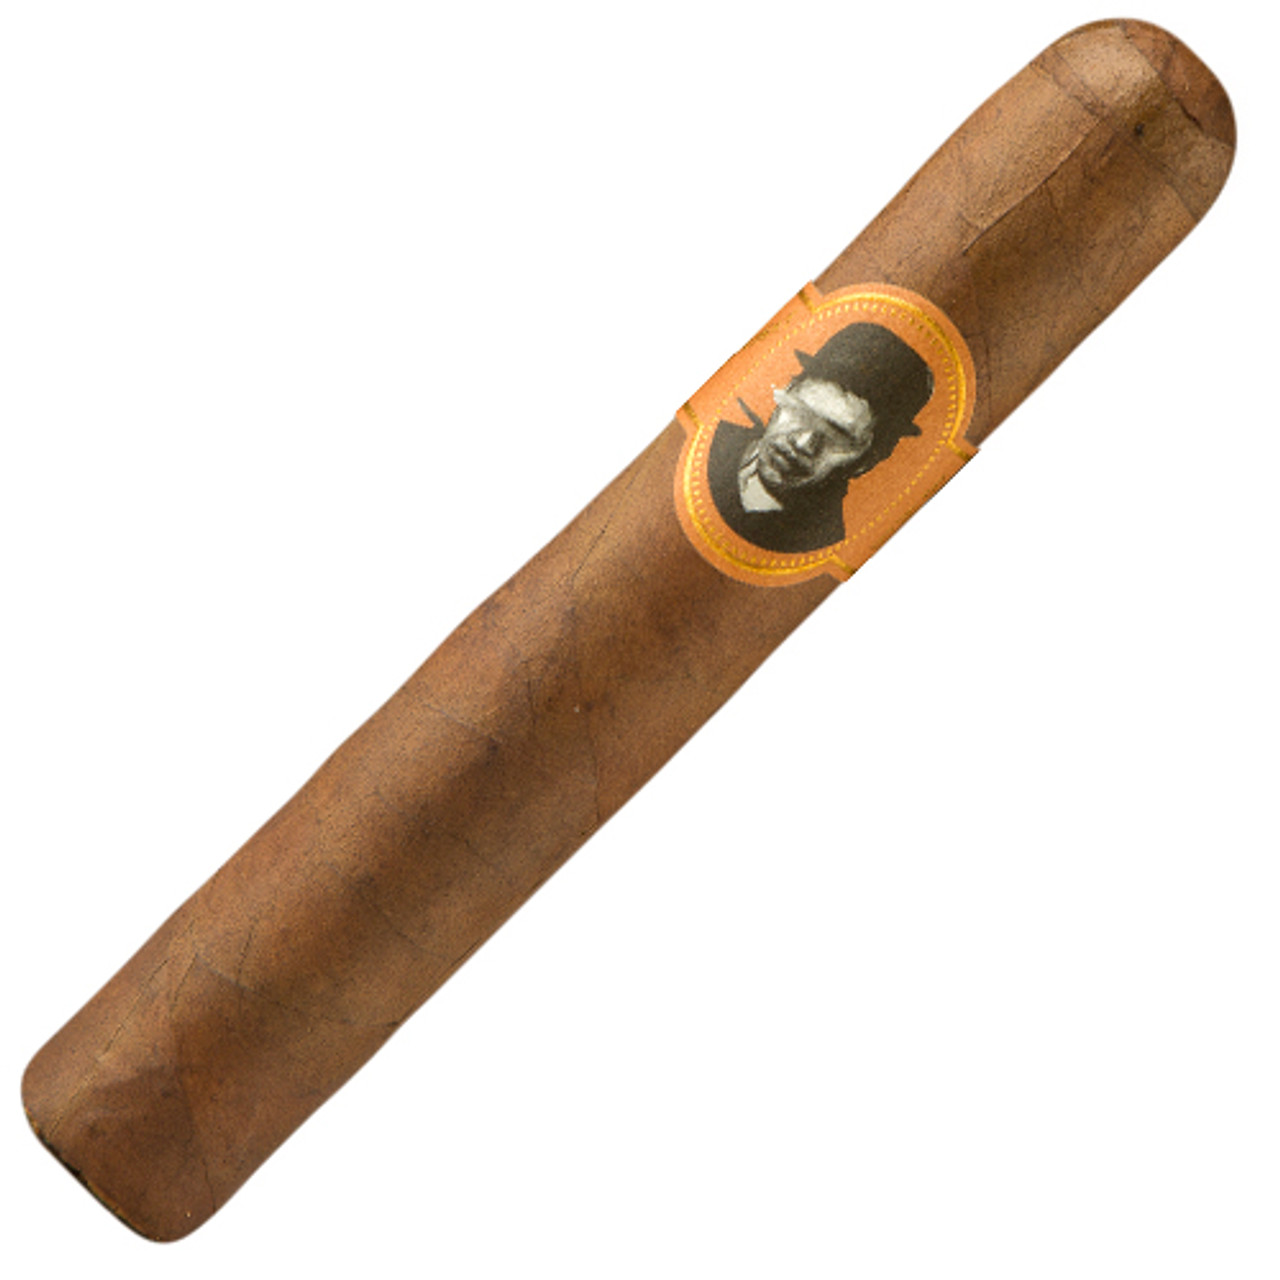 Blind Man's Bluff by Caldwell Cigar Co. Magnum Cigars - 6.5 x 52 (Box of 20)